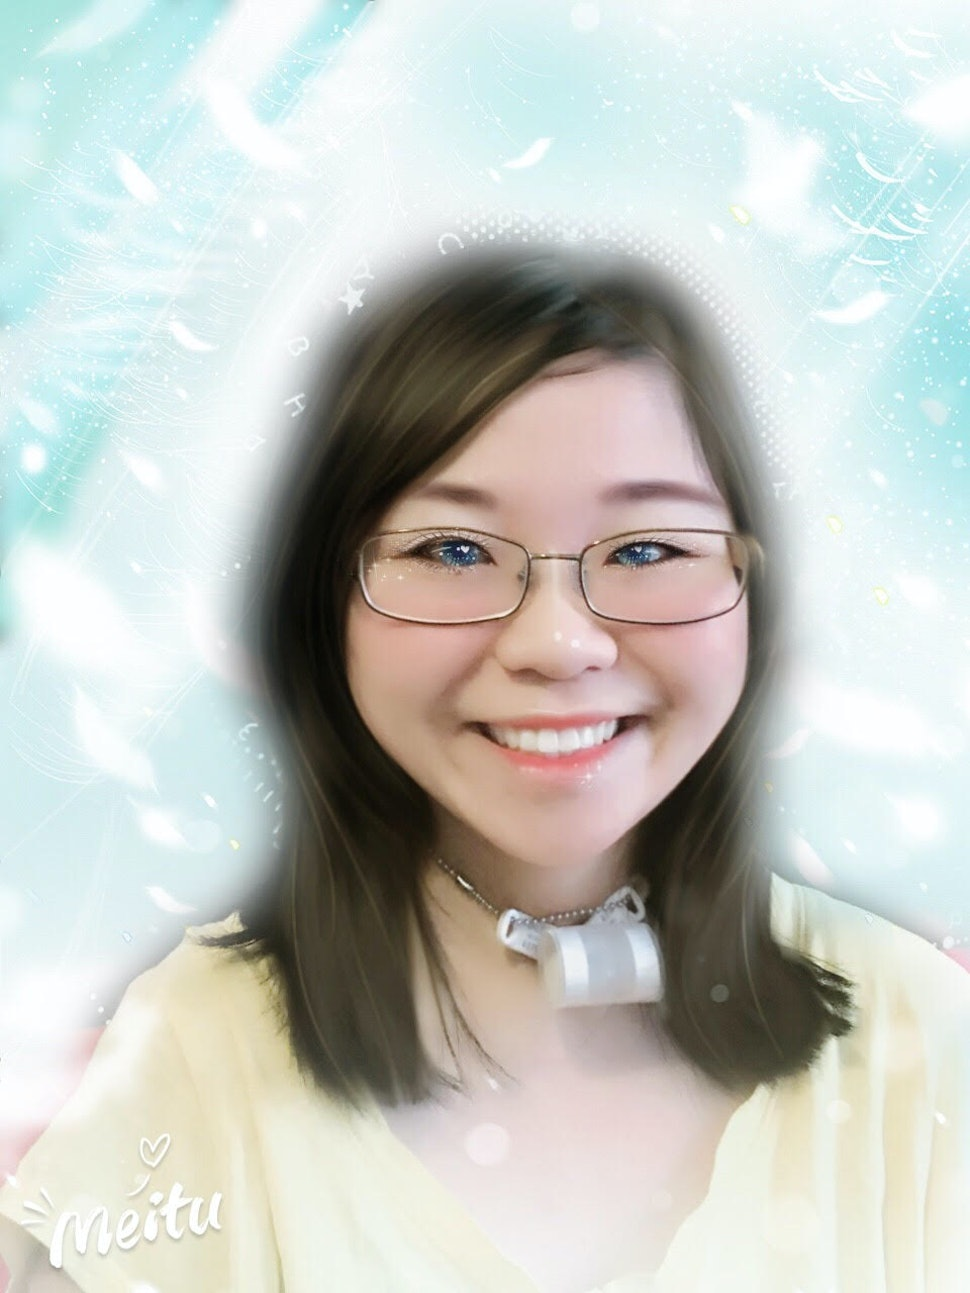 How To Use Meitu The Photo Editing App The Internet Can T Get Enough Of